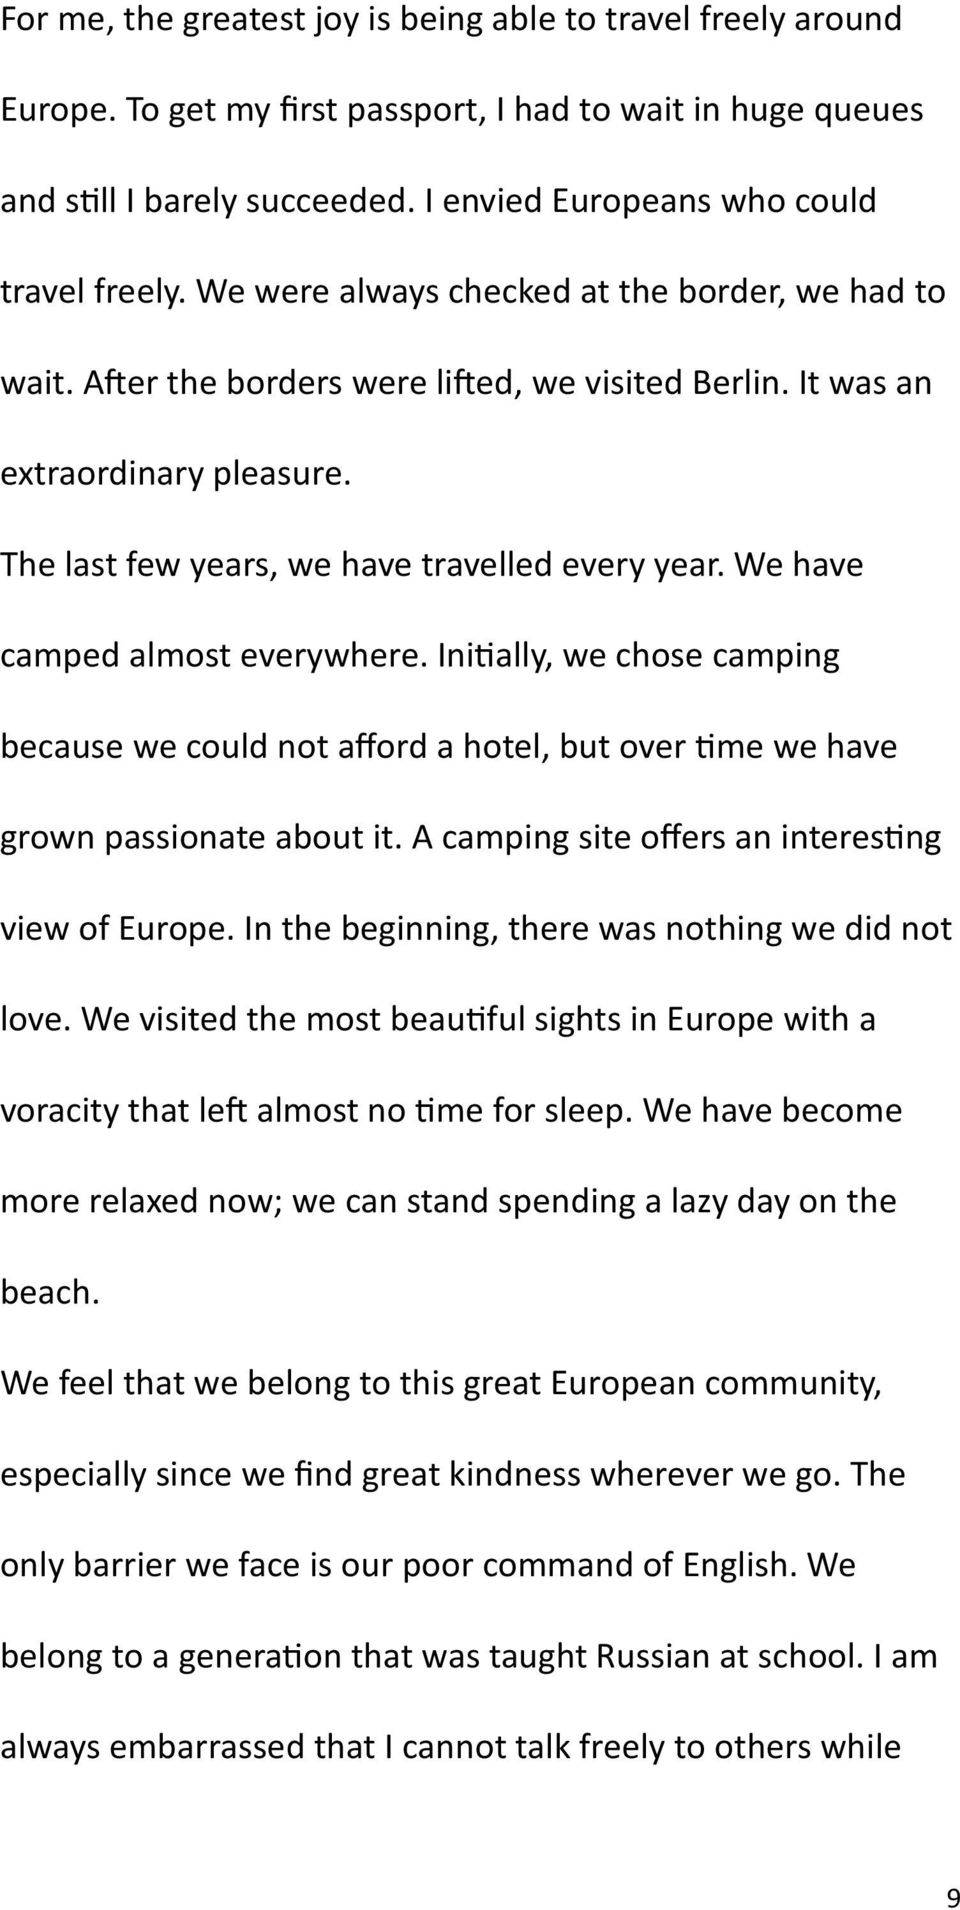 We have camped almost everywhere. Initially, we chose camping because we could not afford a hotel, but over time we have grown passionate about it. A camping site offers an interesting view of Europe.